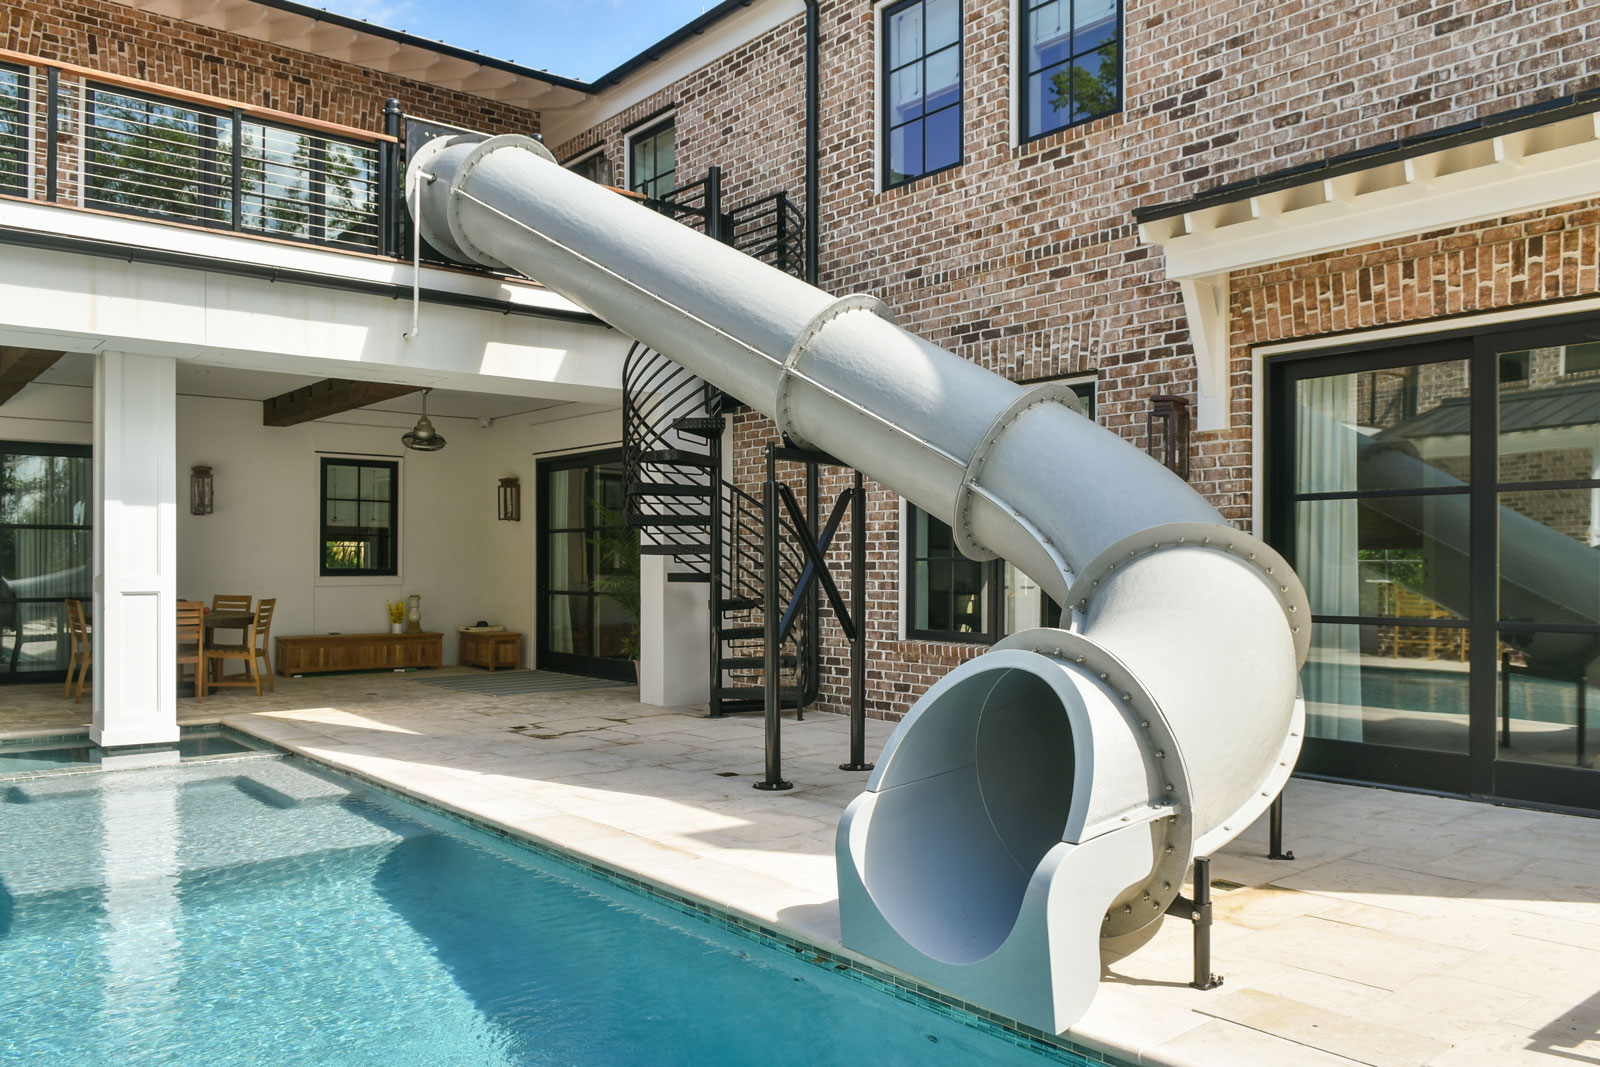 Pool courtyard with two story slide